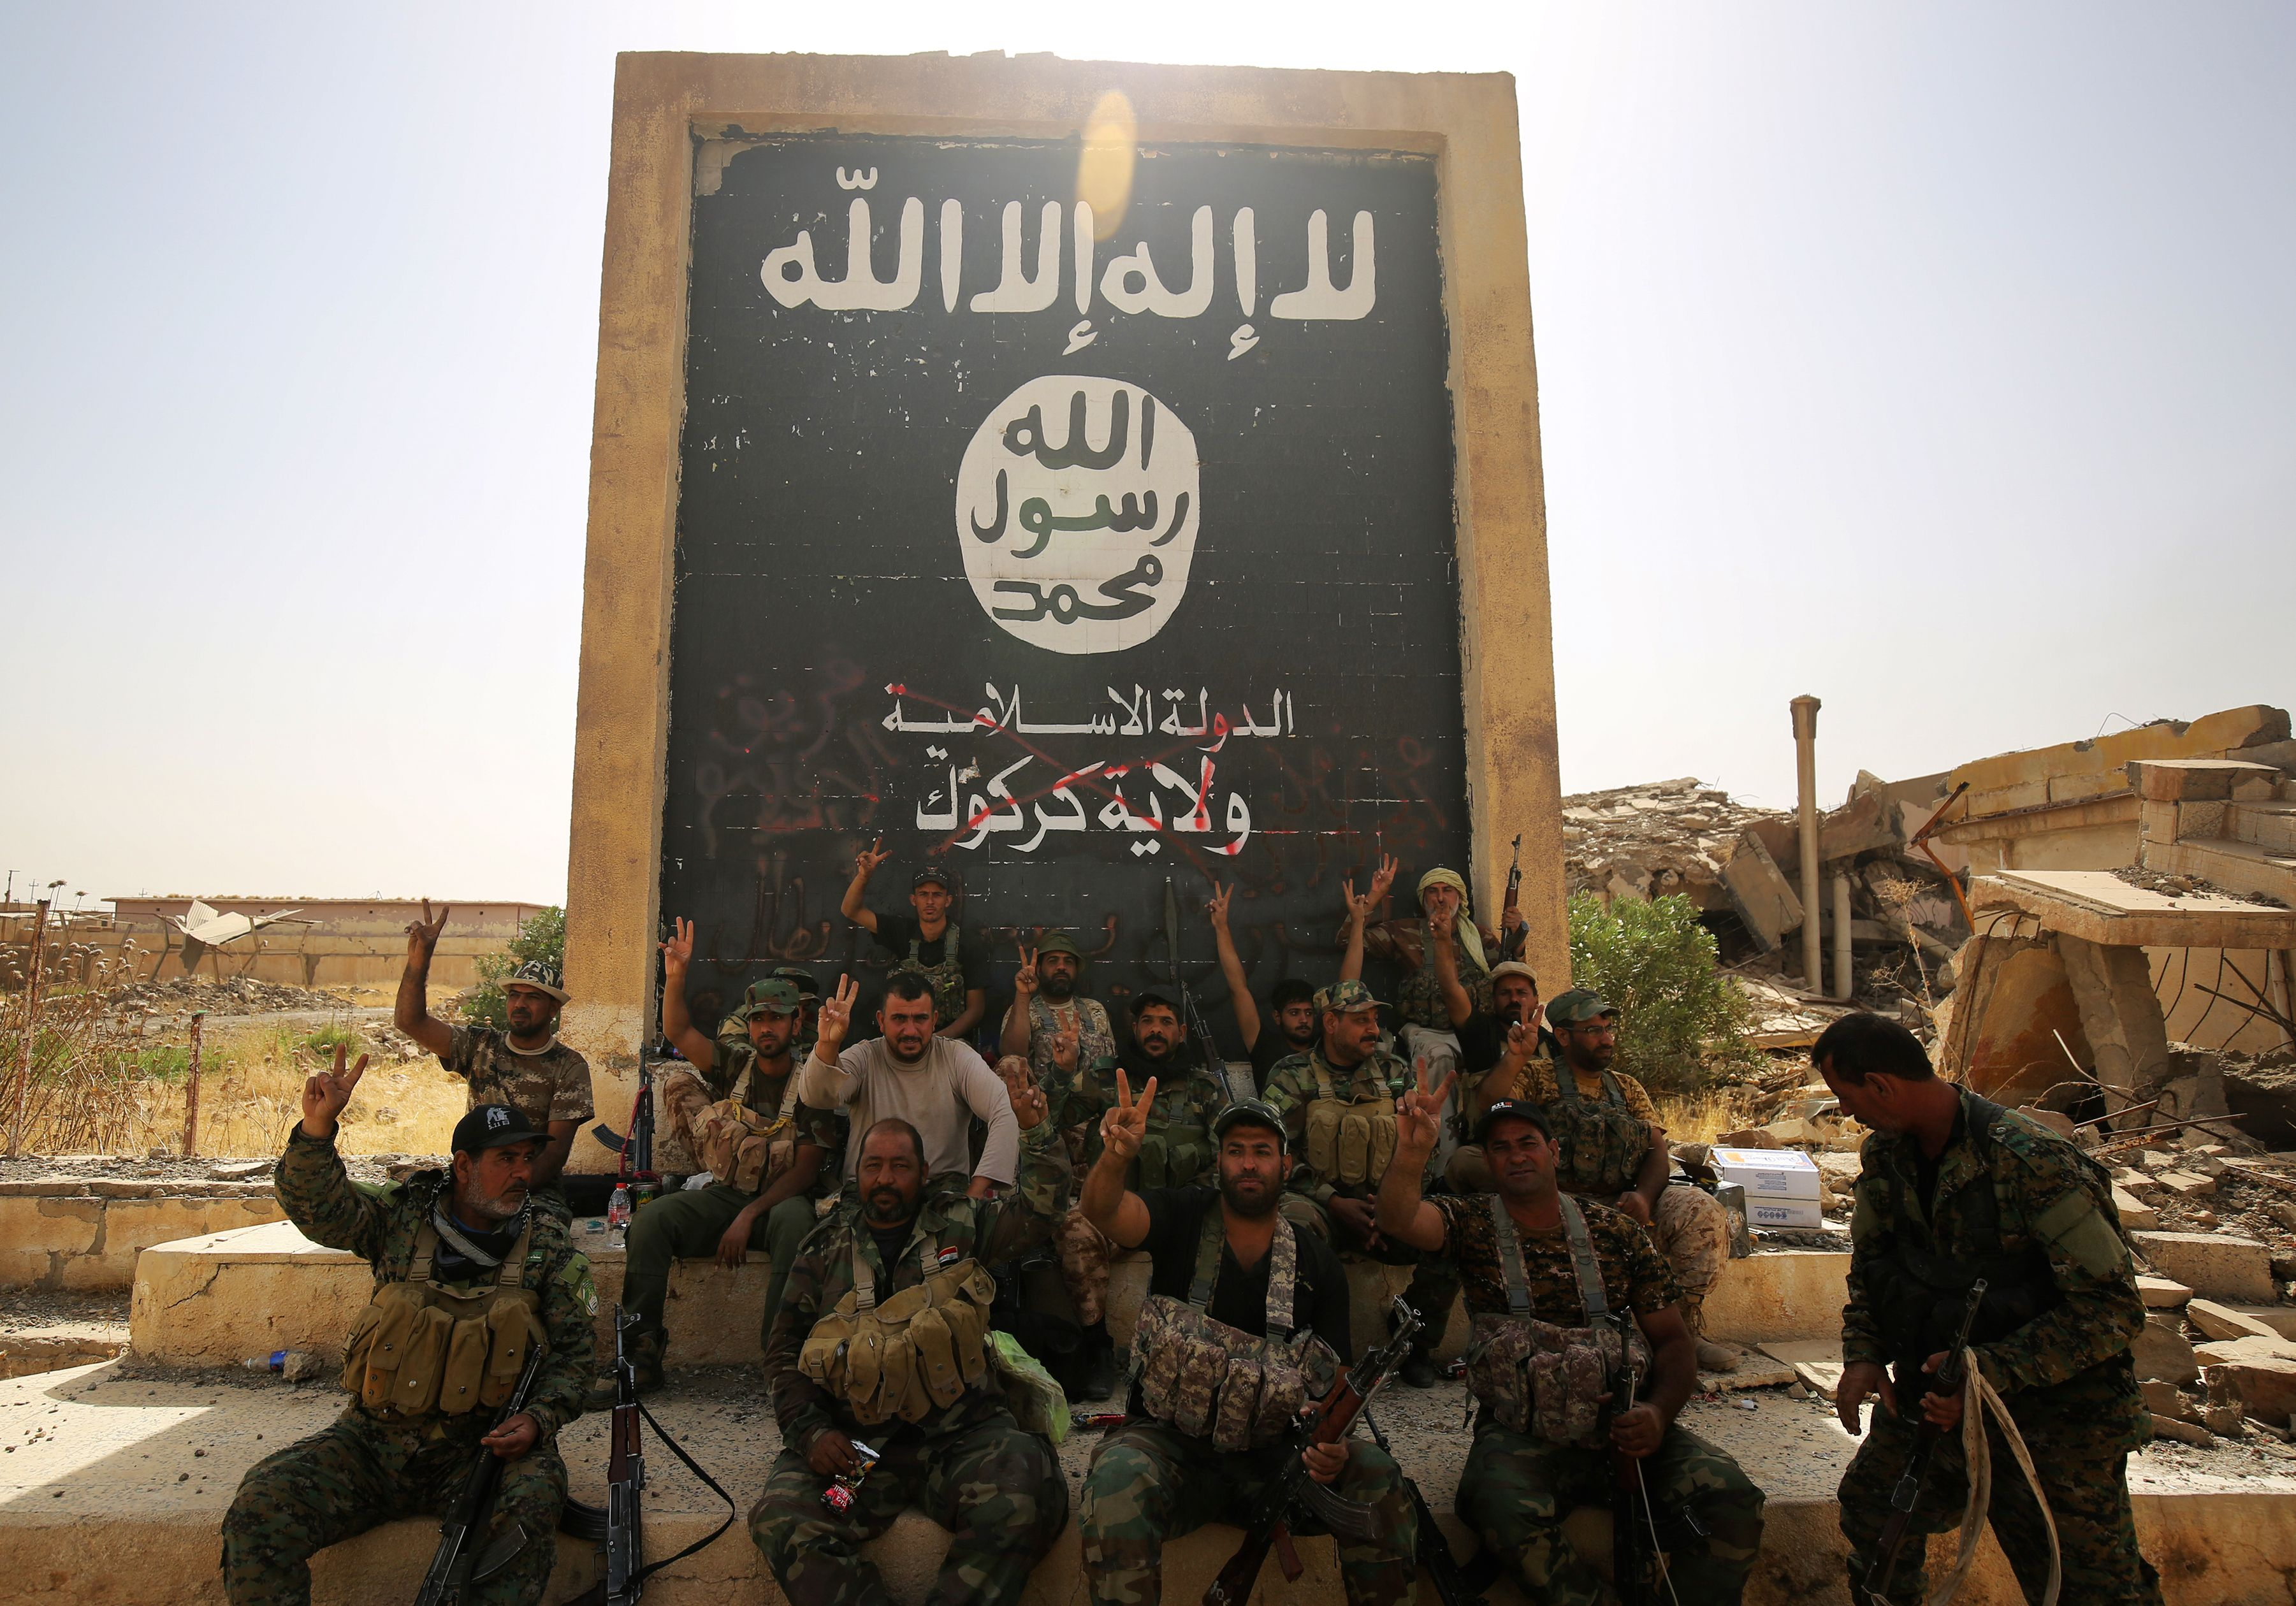 Fighters from the Hashed al-Shaabi (Popular Mobilisation units), backing the Iraqi forces, pose in front of a mural depicting the emblem of the Islamic State (IS) group as troops advance through Hawija on October 5, 2017, after retaking the city from Islamic State (IS) group fighters. (AHMAD AL-RUBAYE/AFP via Getty Images)